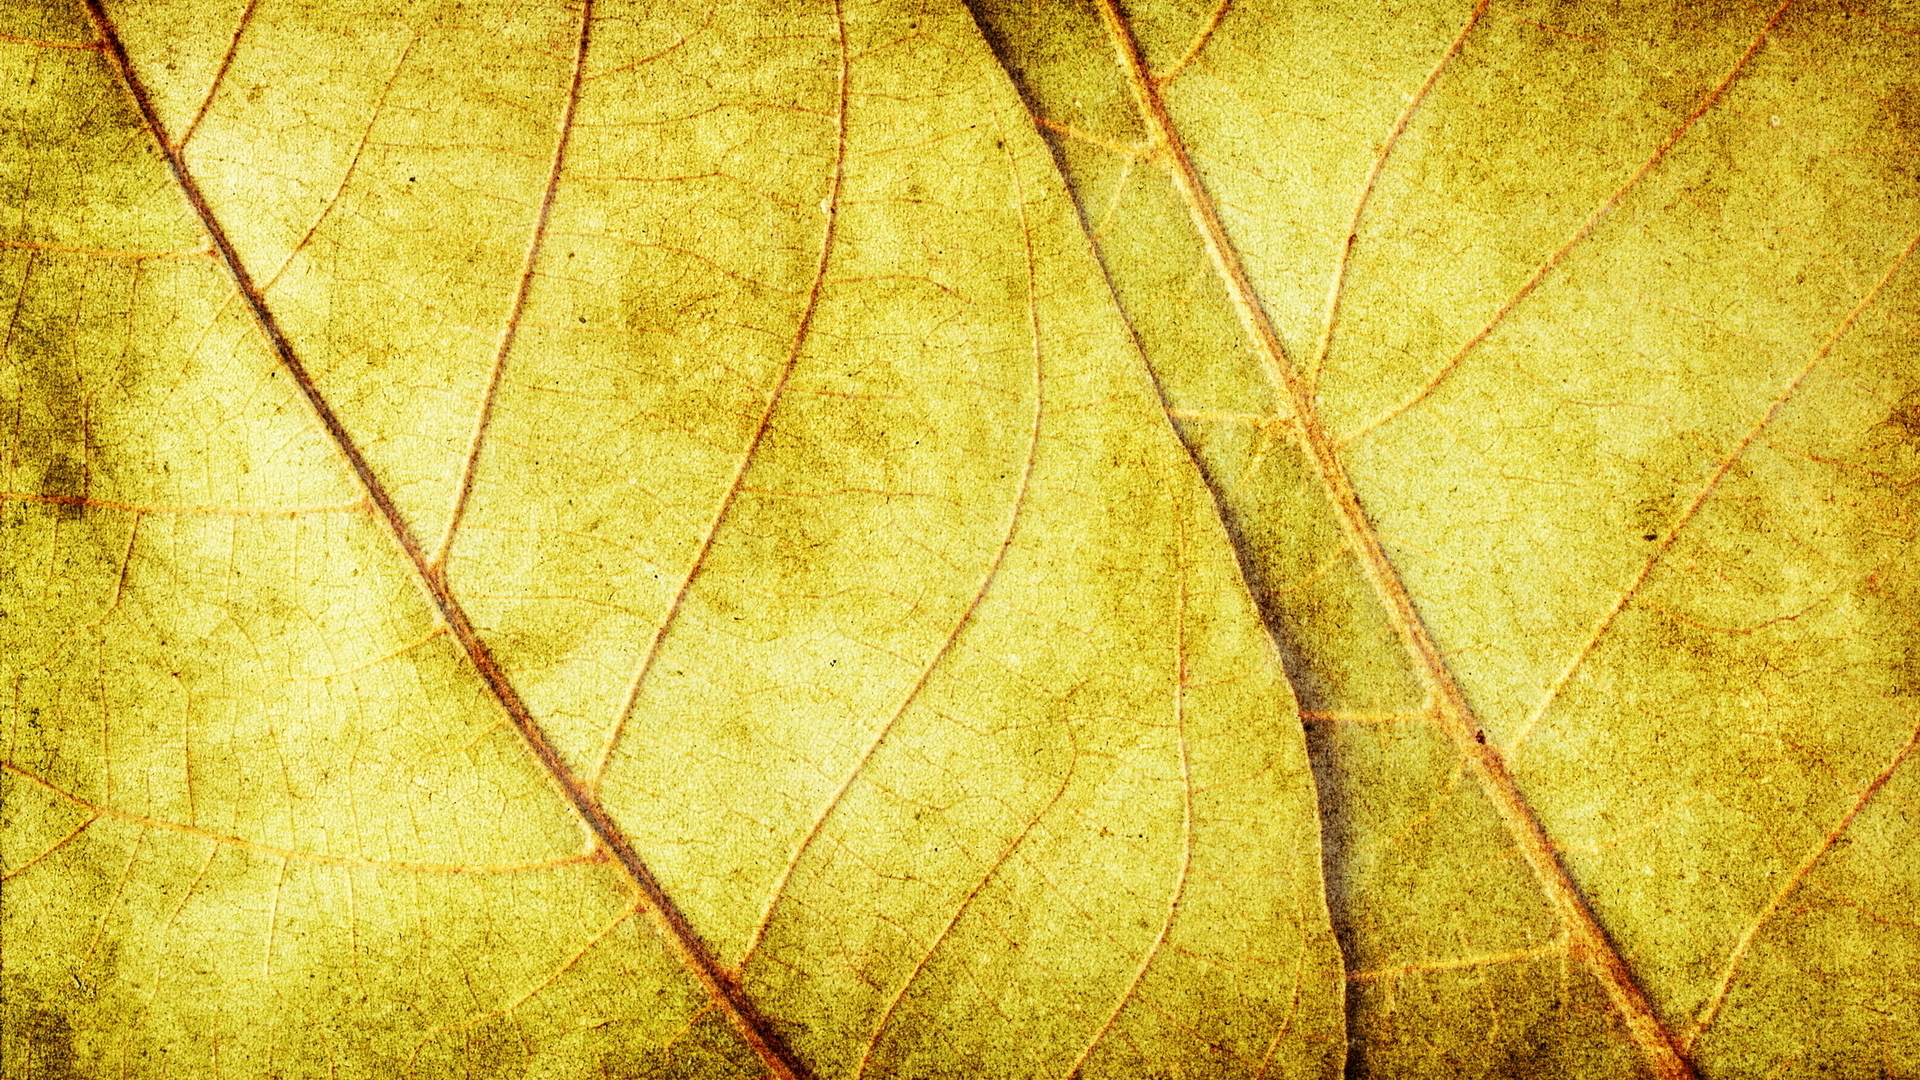 yellow dry leaves, download photo, background, texture